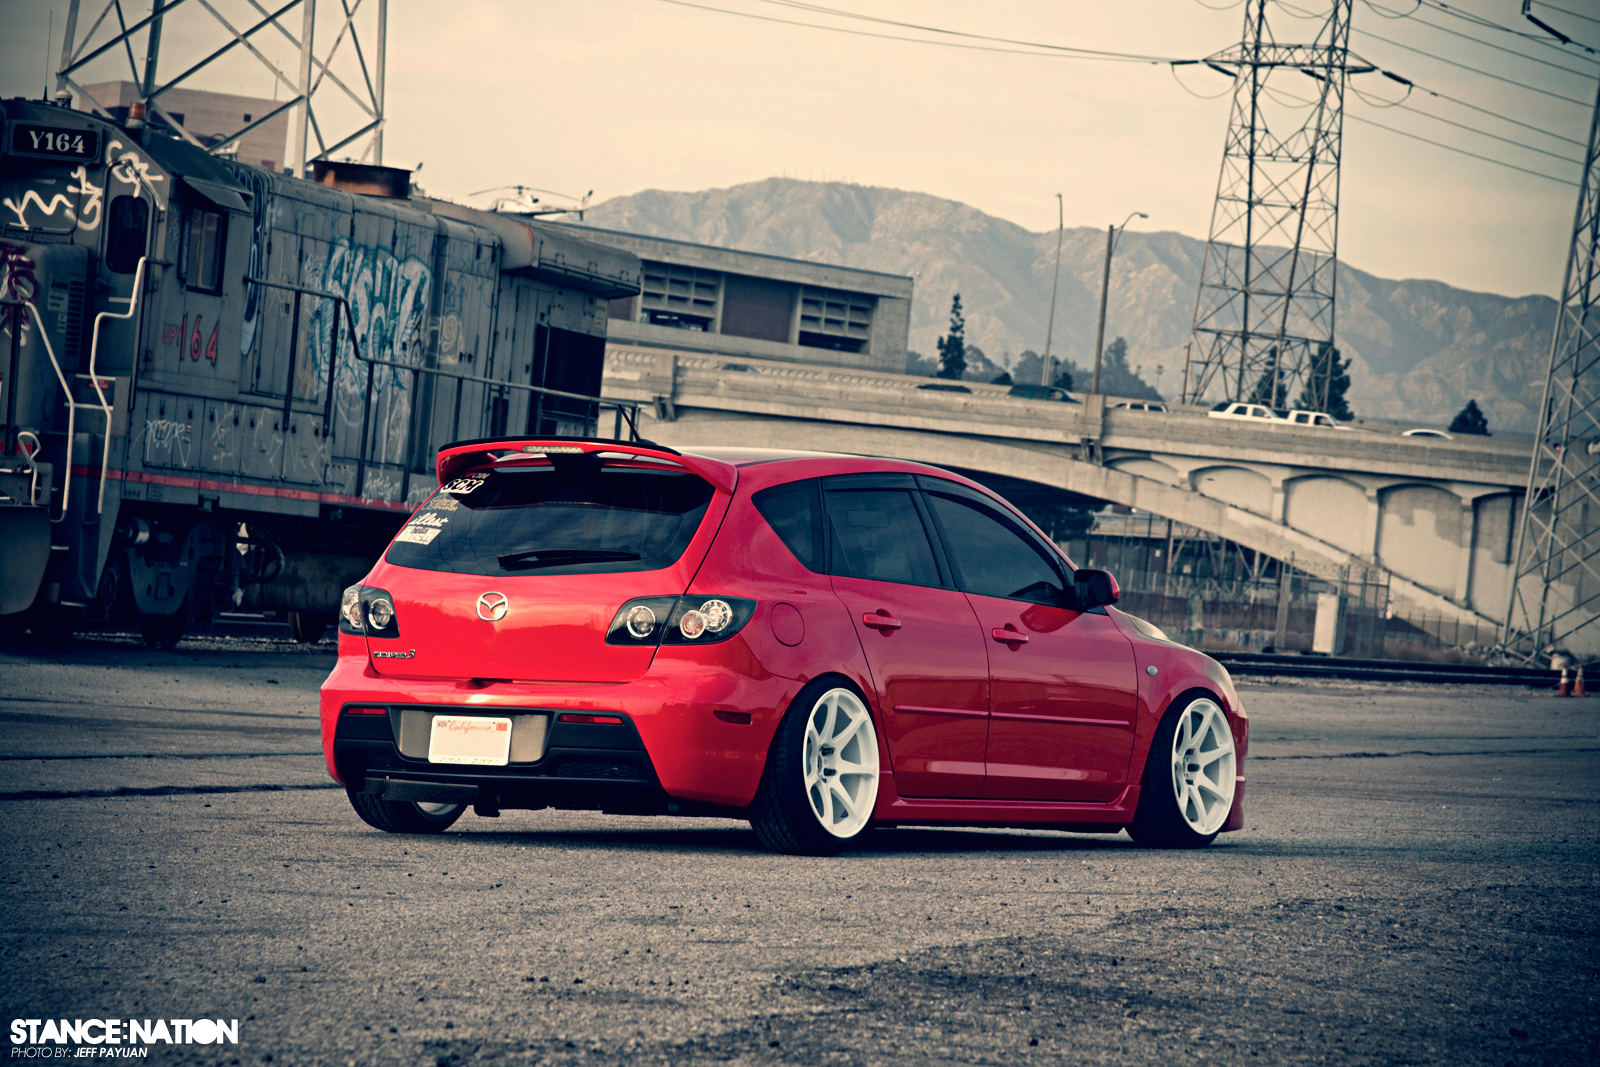 MazdaSpeed3 wallpaper   hdwallpaper20com 1600x1067